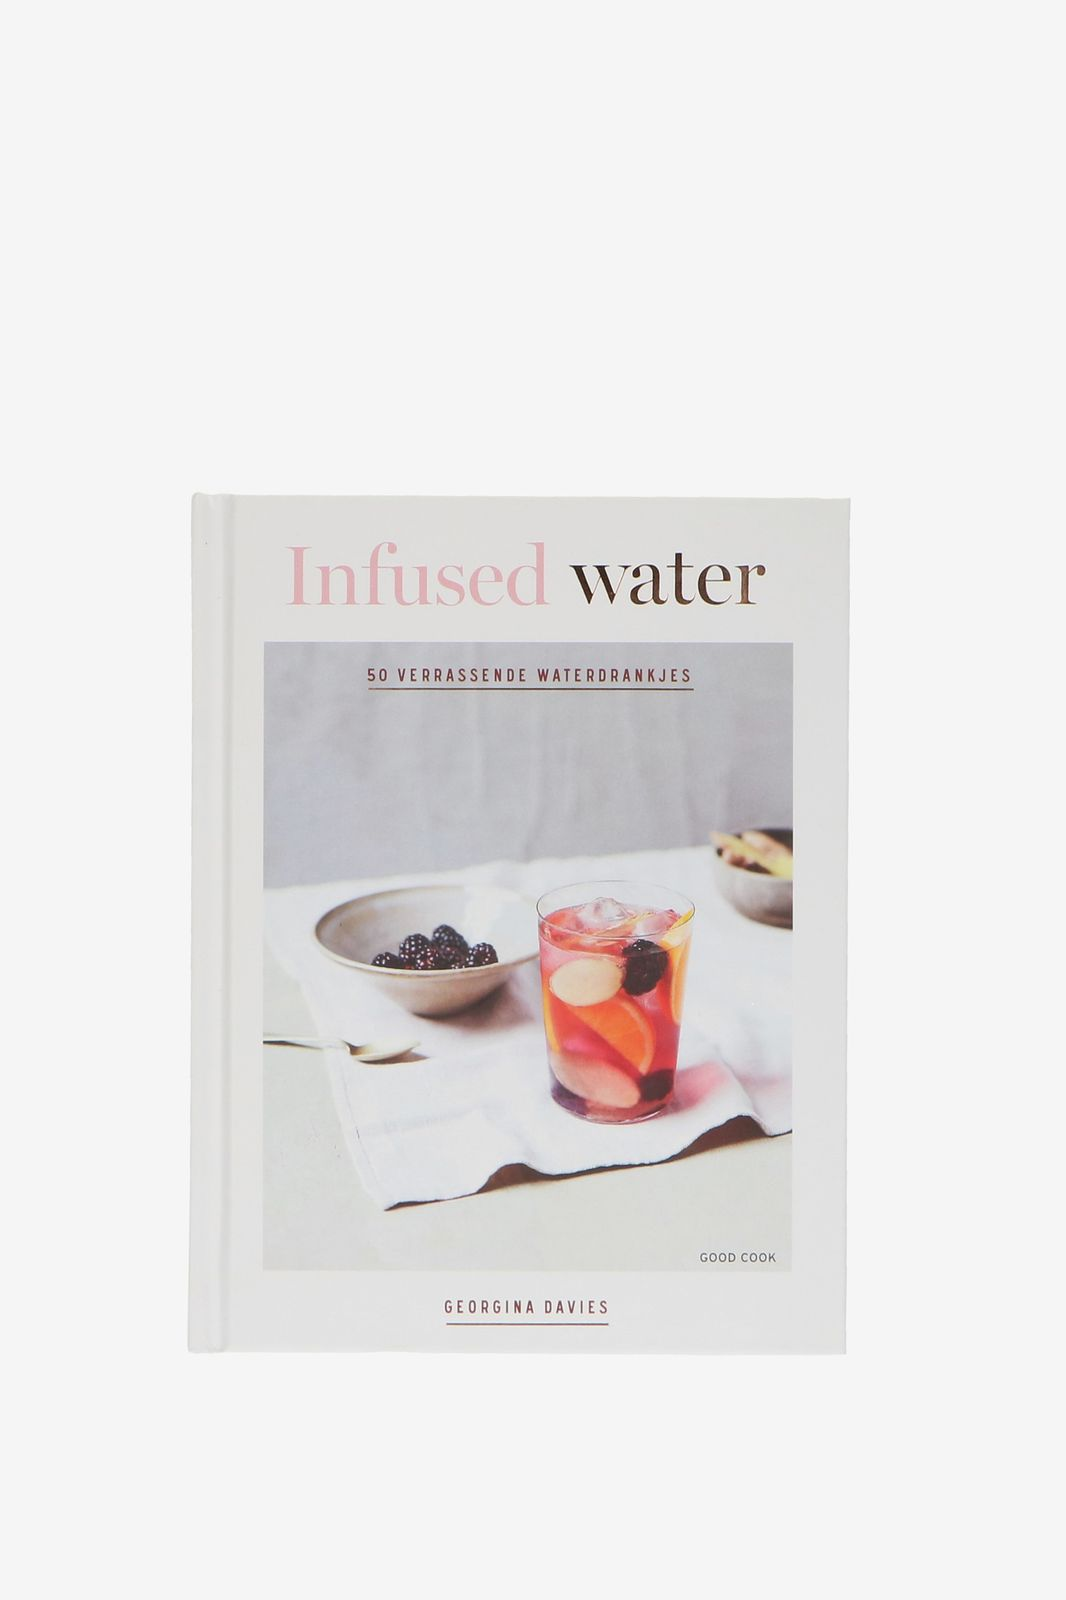 Boek infused water - Homeland | Sissy-Boy